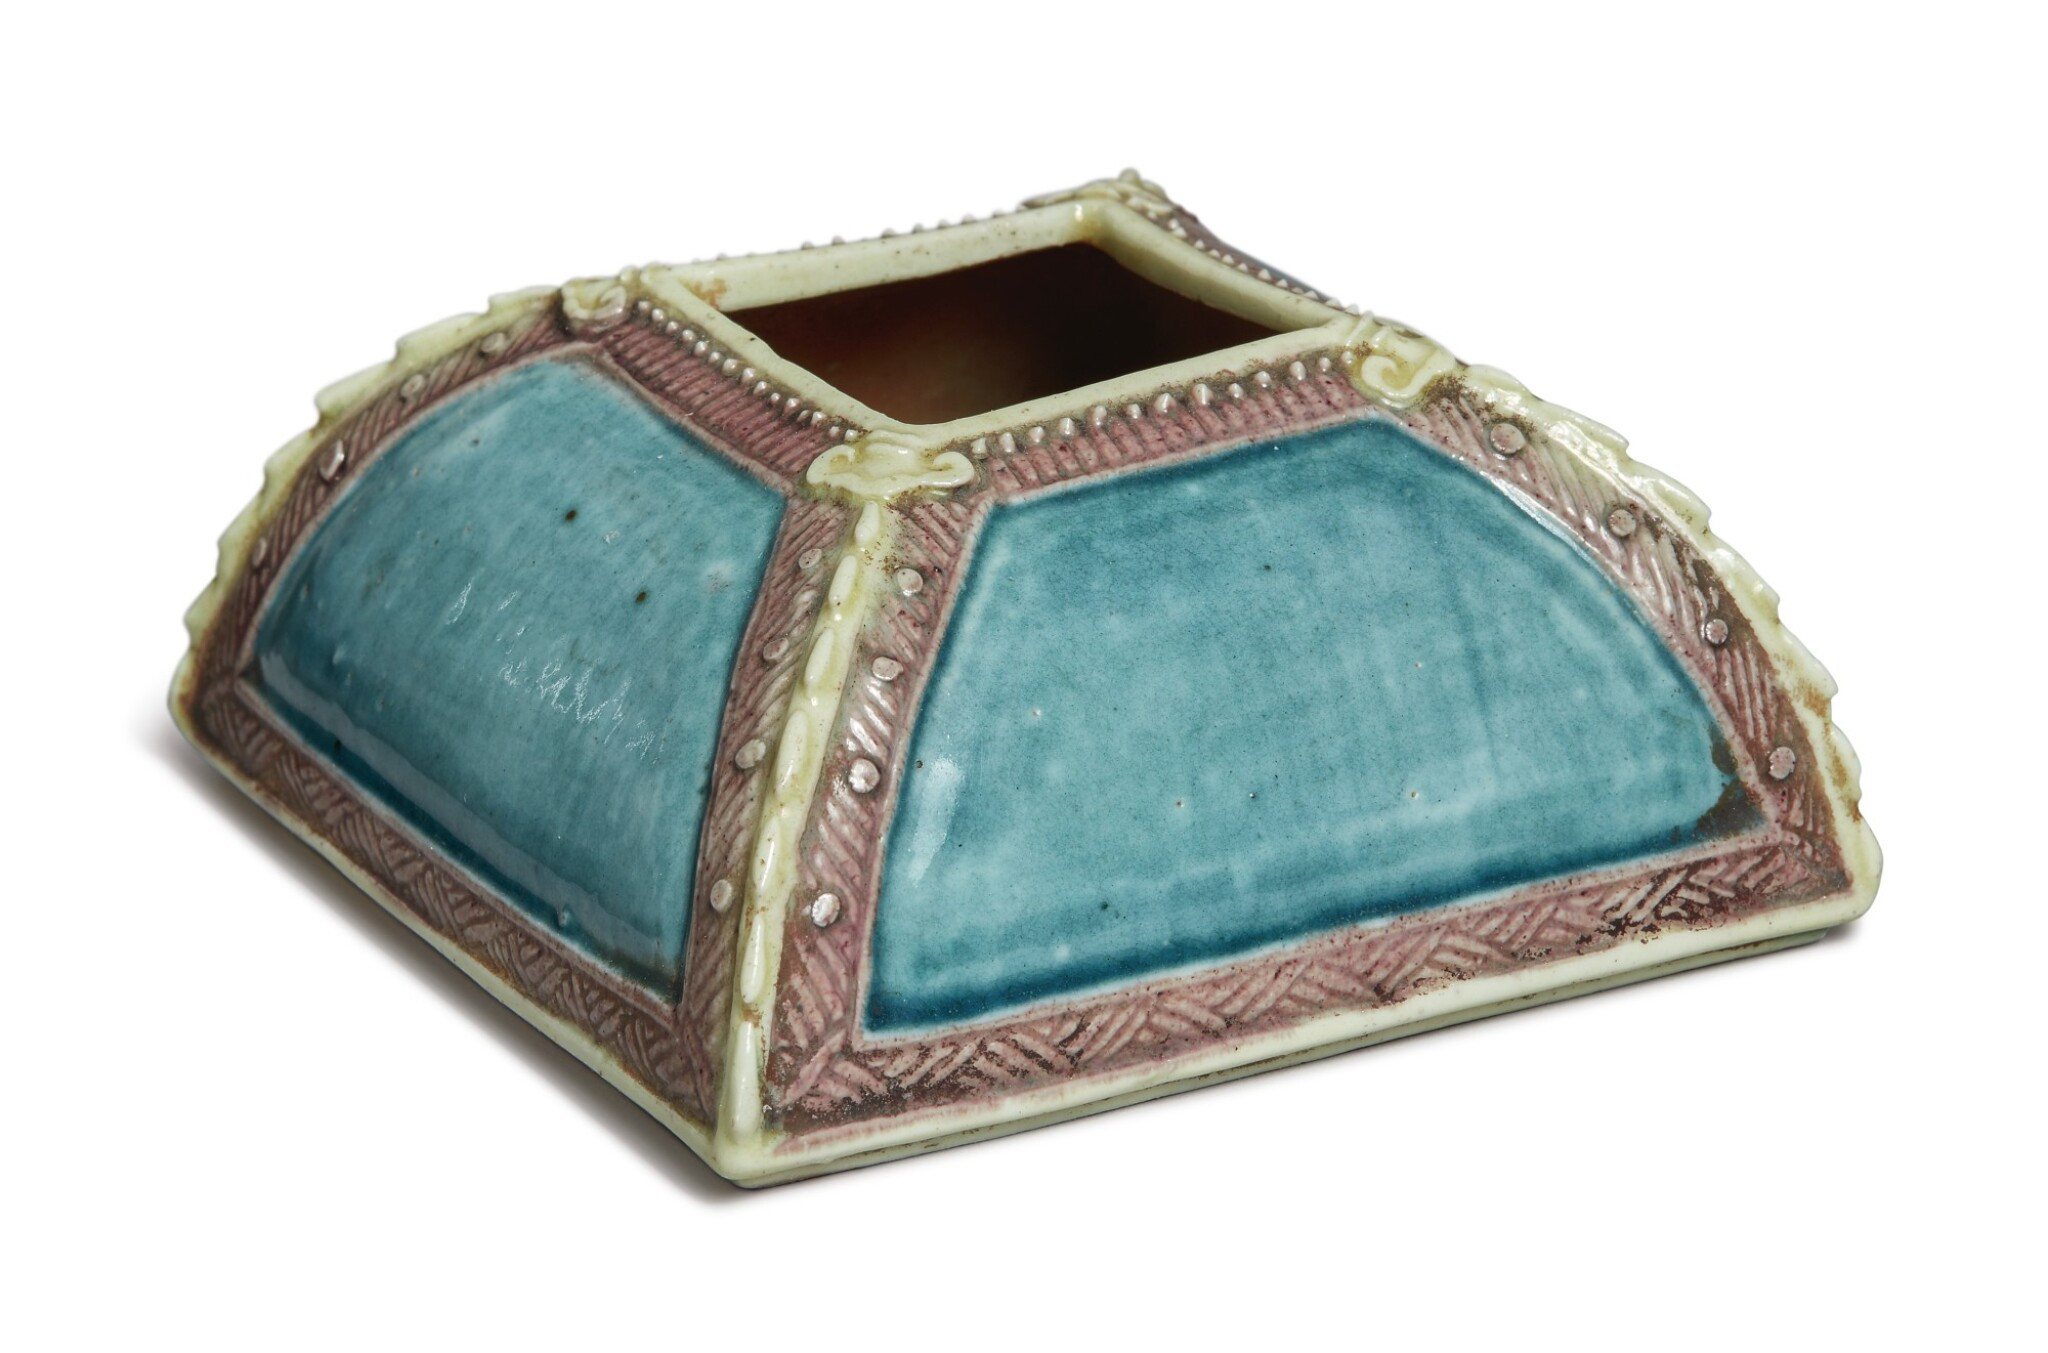 View 1 of Lot 1127. A SQUARE-SECTION TURQUOISE AND AUBERGINE-GLAZED WATERPOT, QING DYNASTY, 19TH CENTURY.